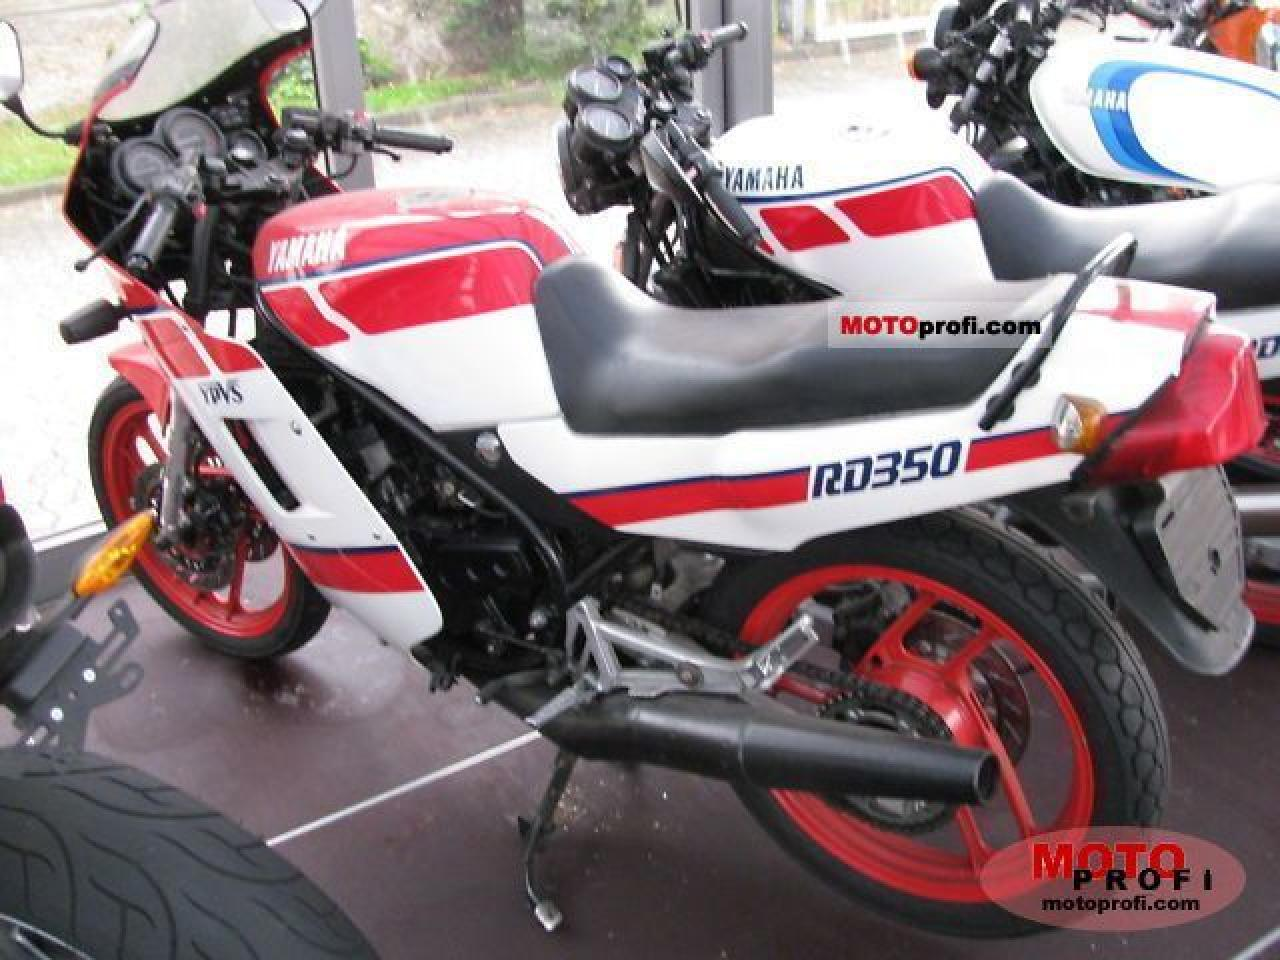 1986 Yamaha RD 350 (reduced effect) #1